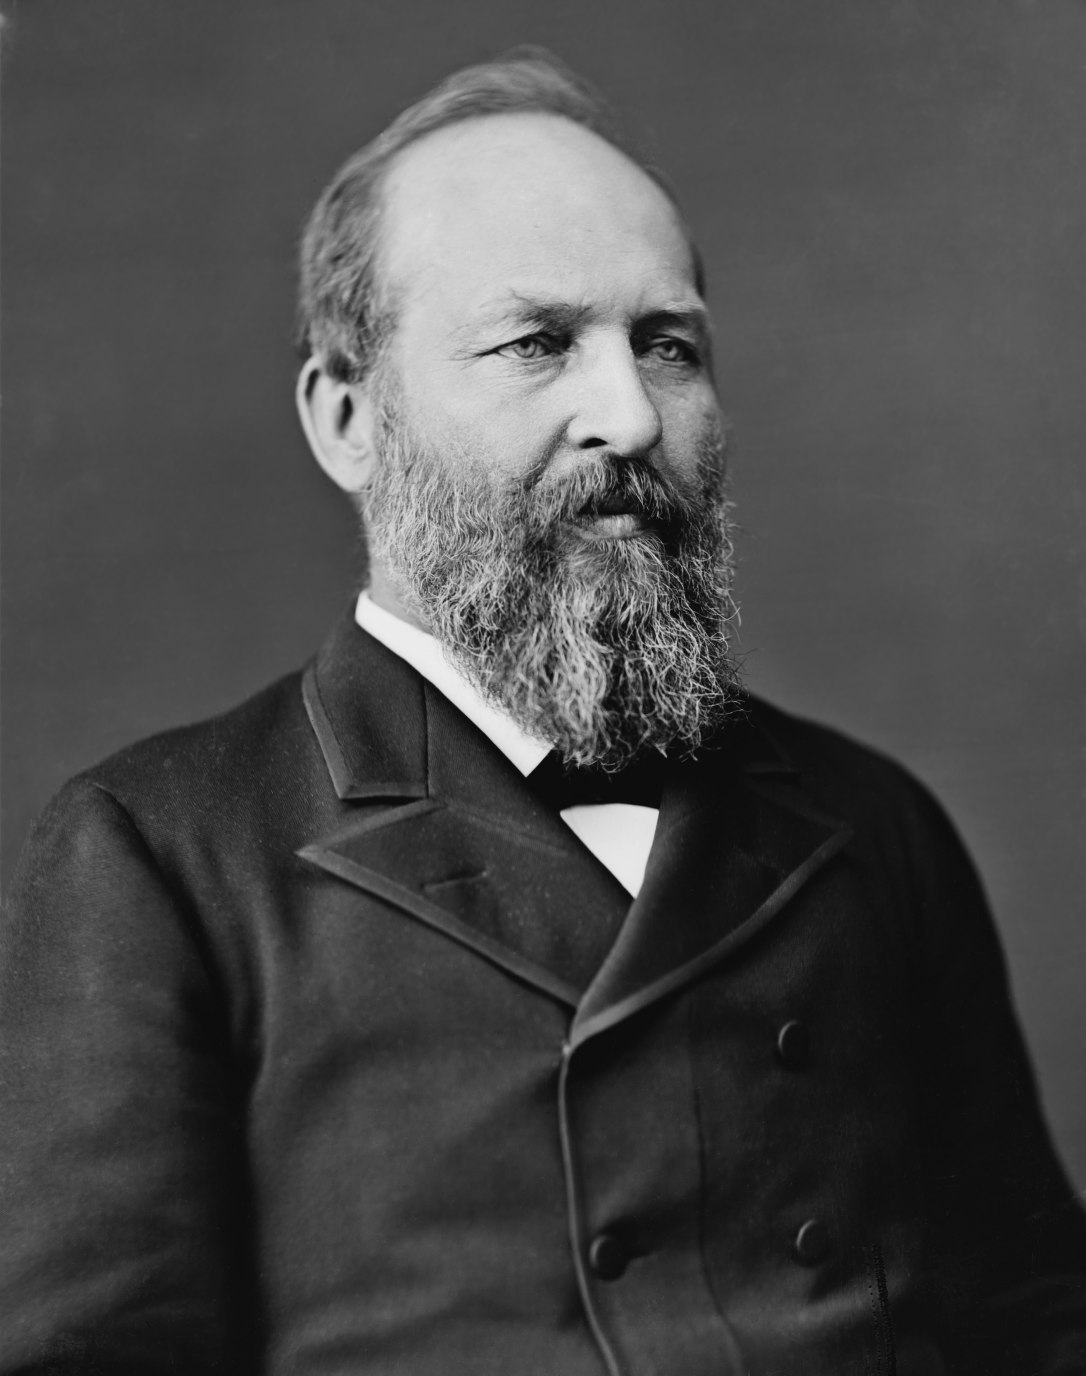 James_Abram_Garfield,_photo_portrait_seated